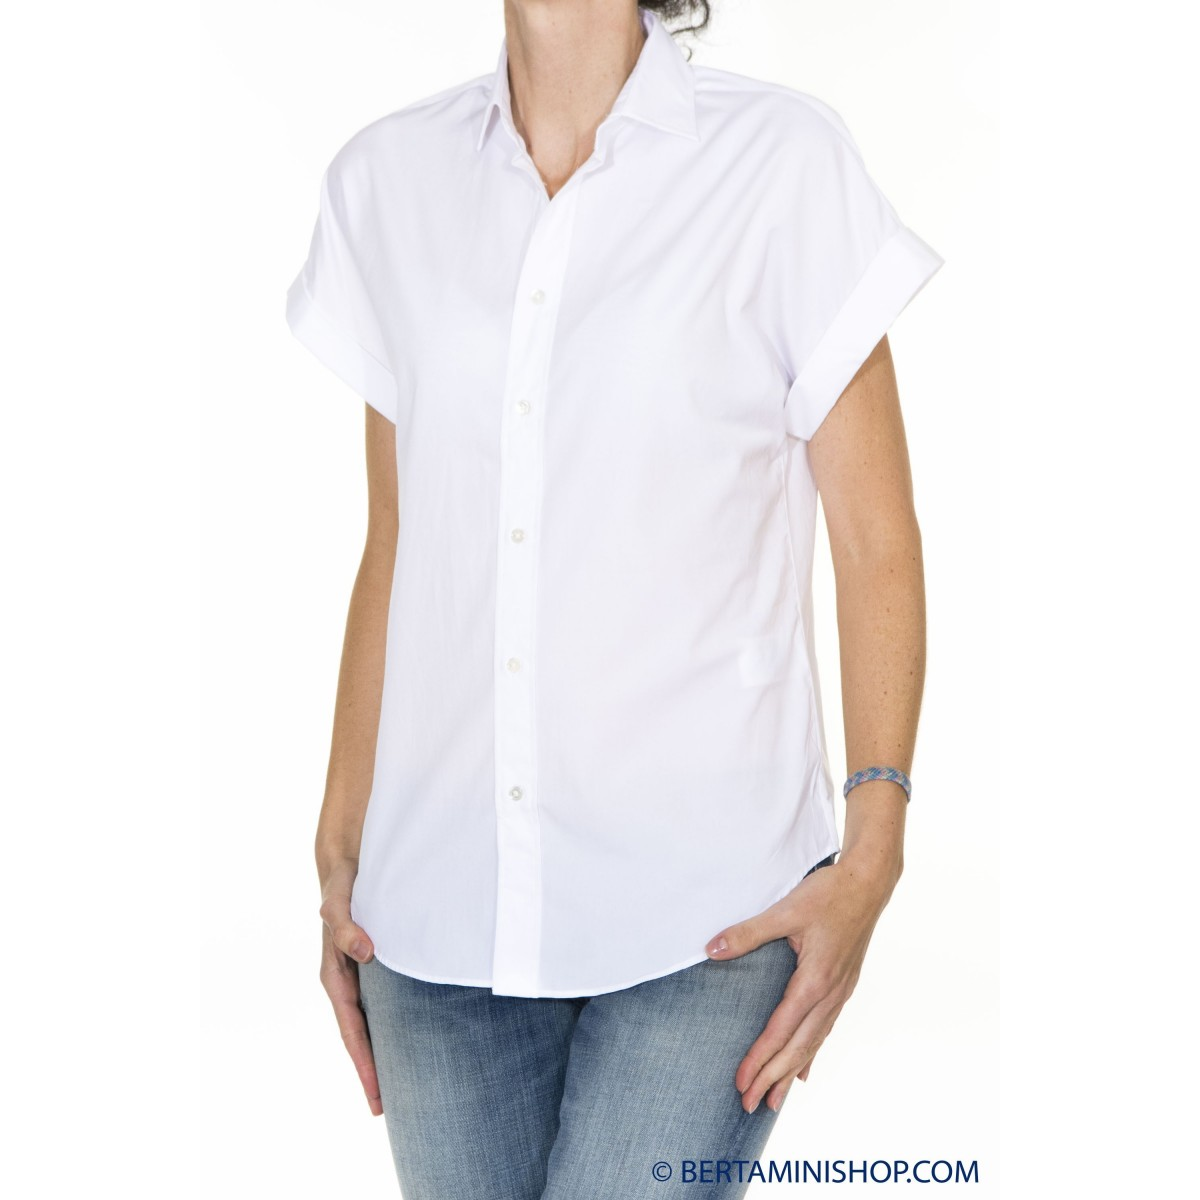 Shirt Ralph Lauren Woman  - V33Ih728Bh728